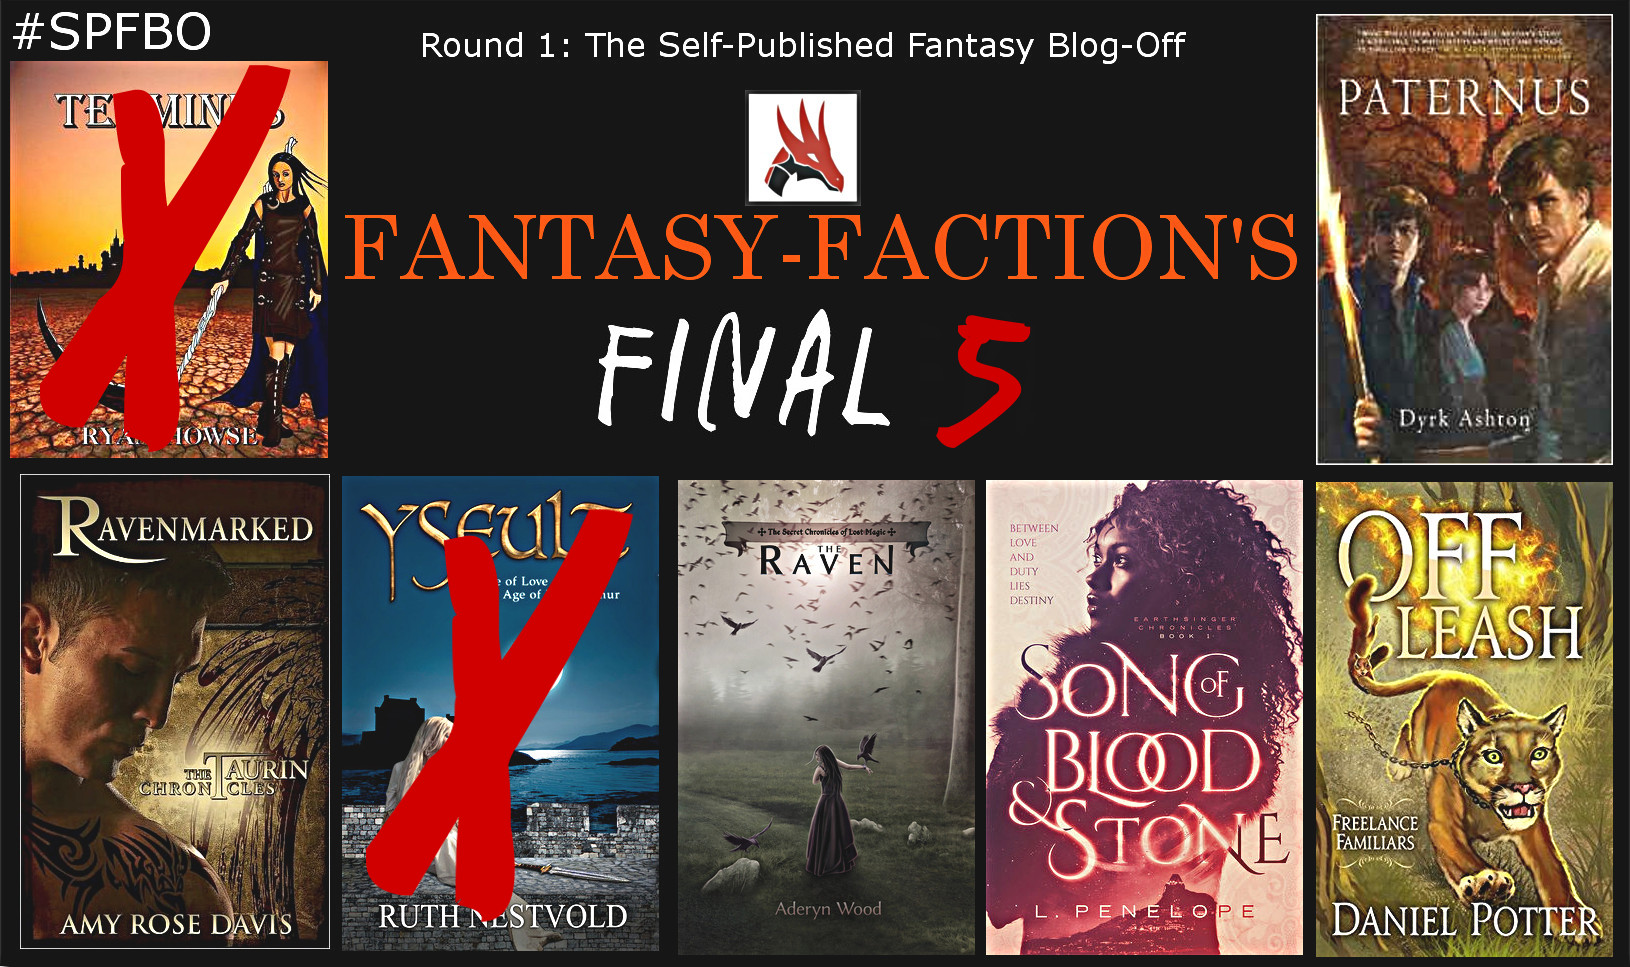 SPFBO - Fantasy-Faction's Final Five